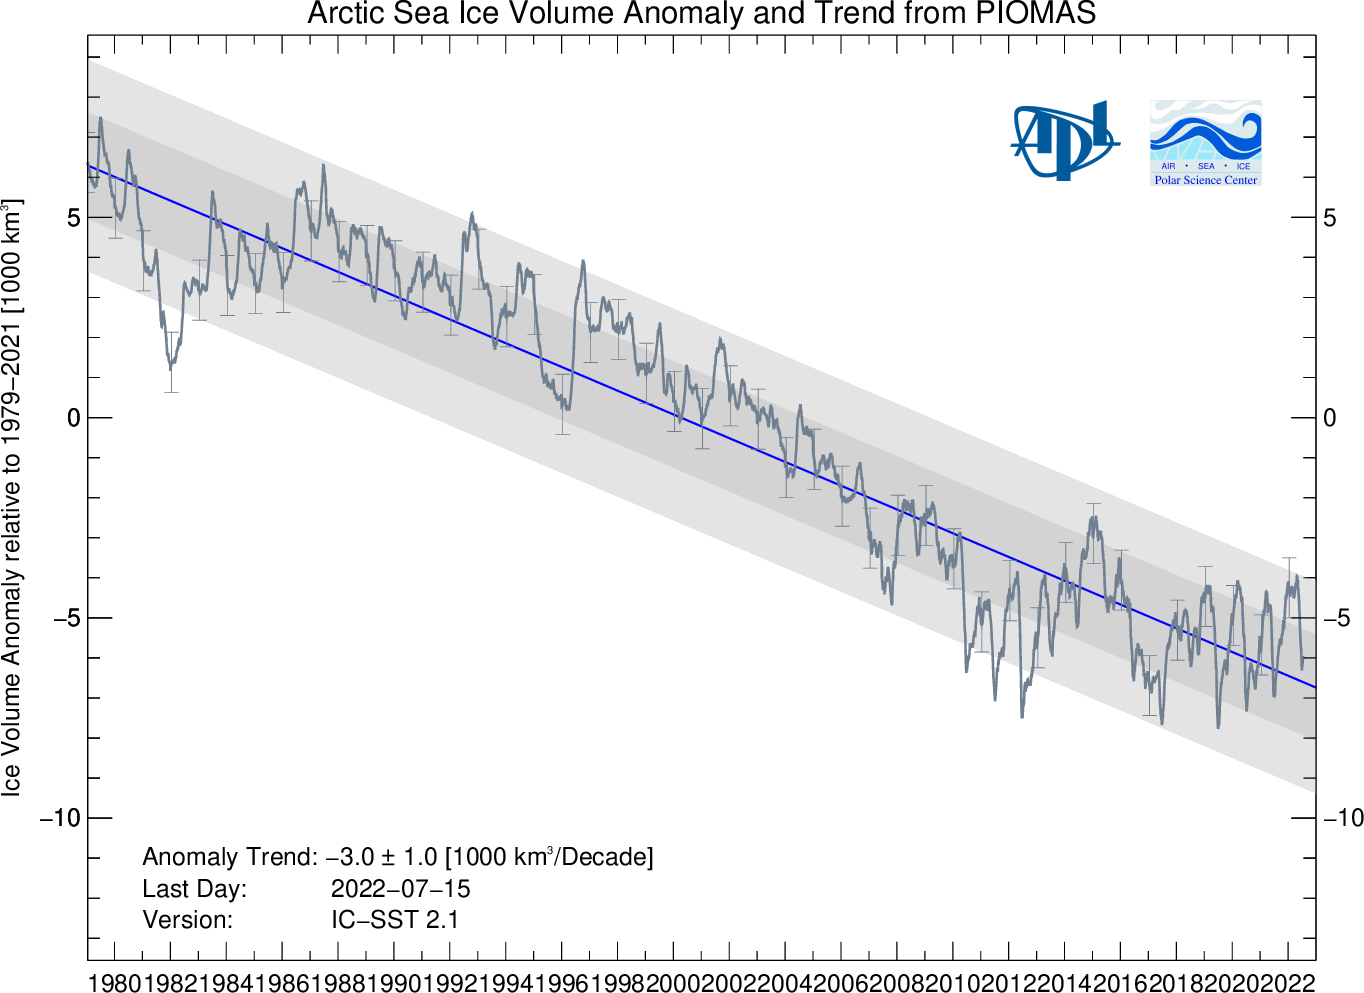 http://psc.apl.washington.edu/research/projects/arctic-sea-ice-volume-anomaly/